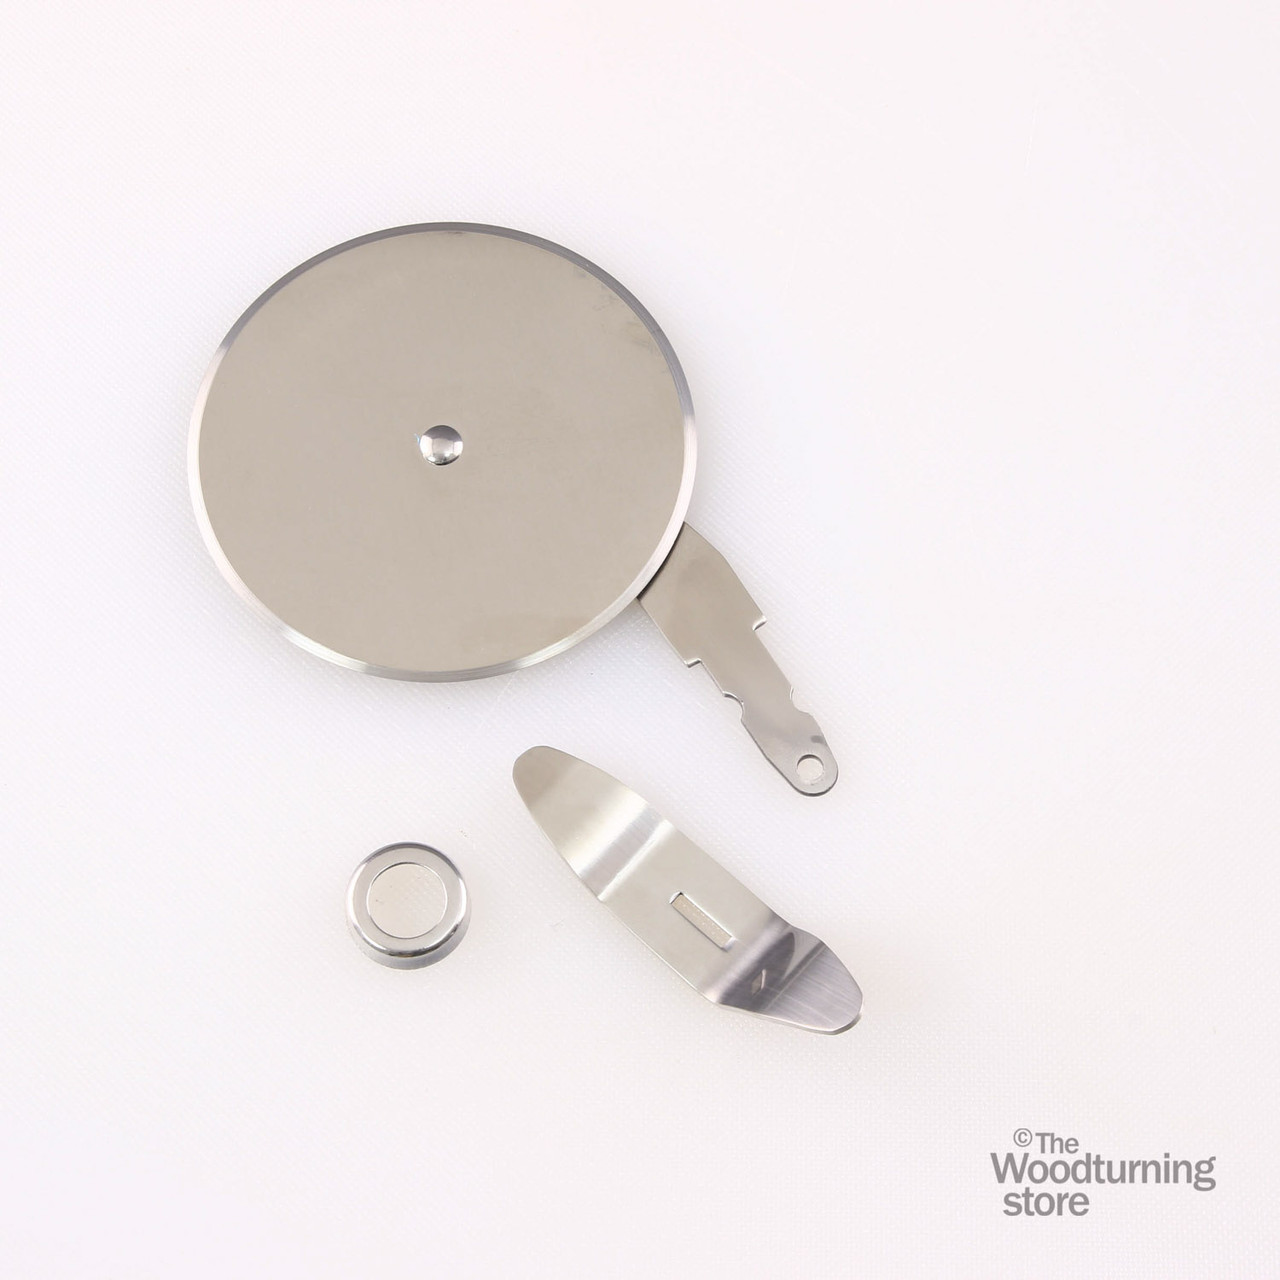 Legacy Stainless Steel Pizza Cutter Kit